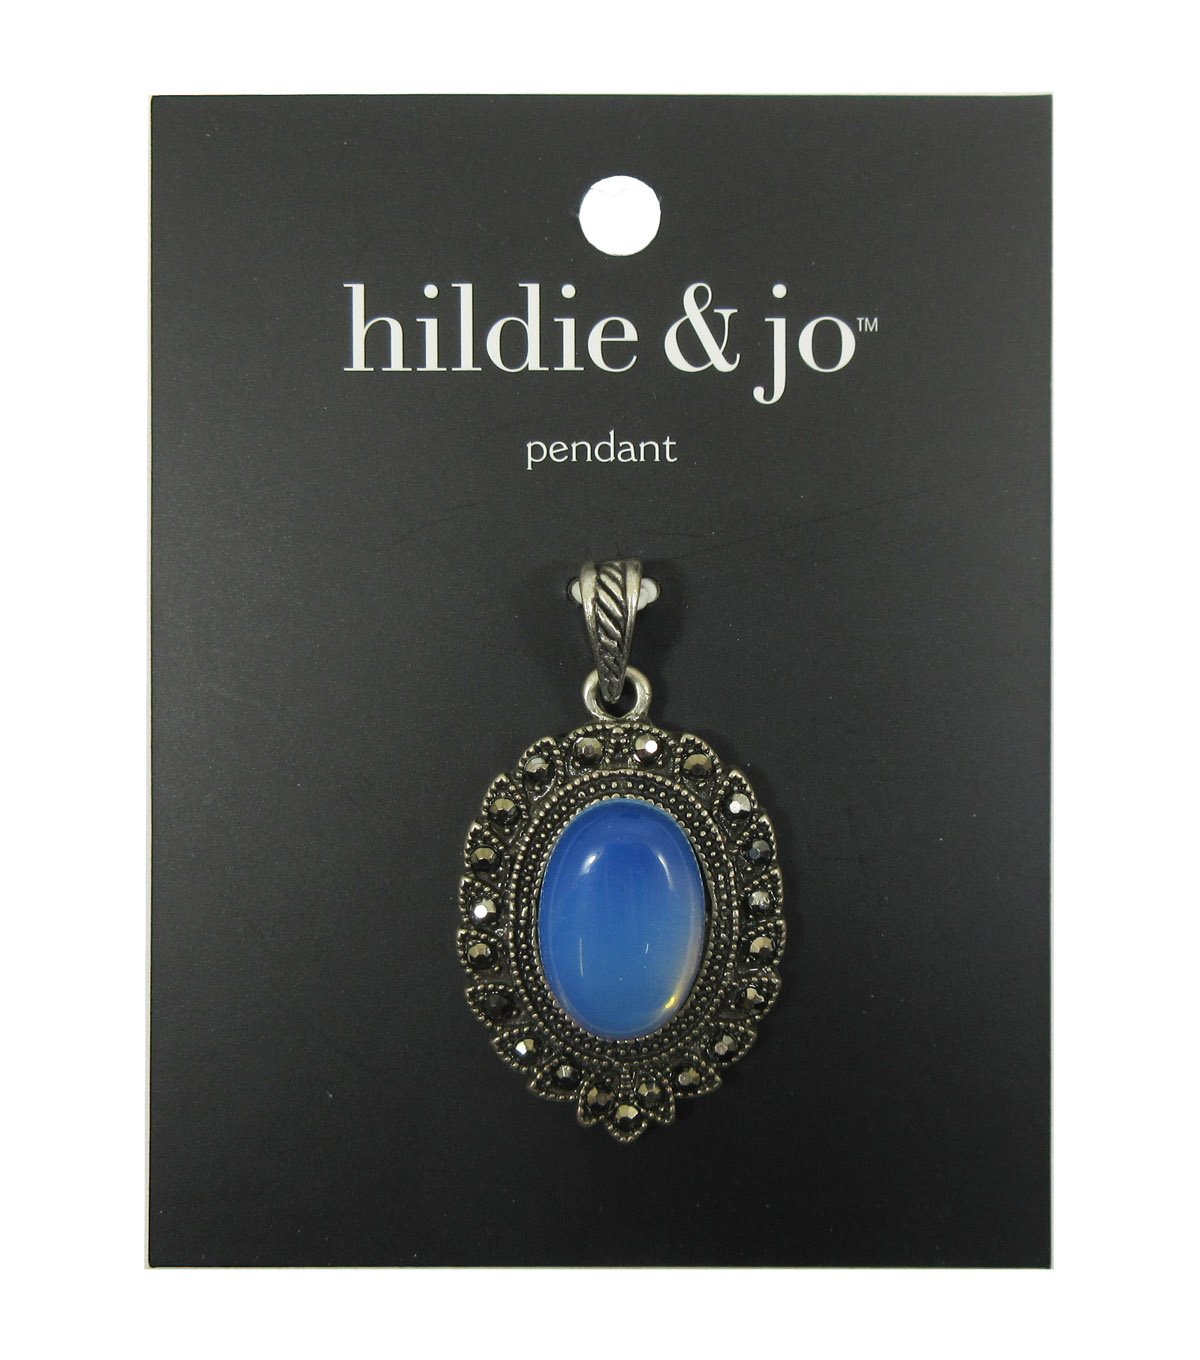 hildie & jo Ornamental Oval Metal Pendant